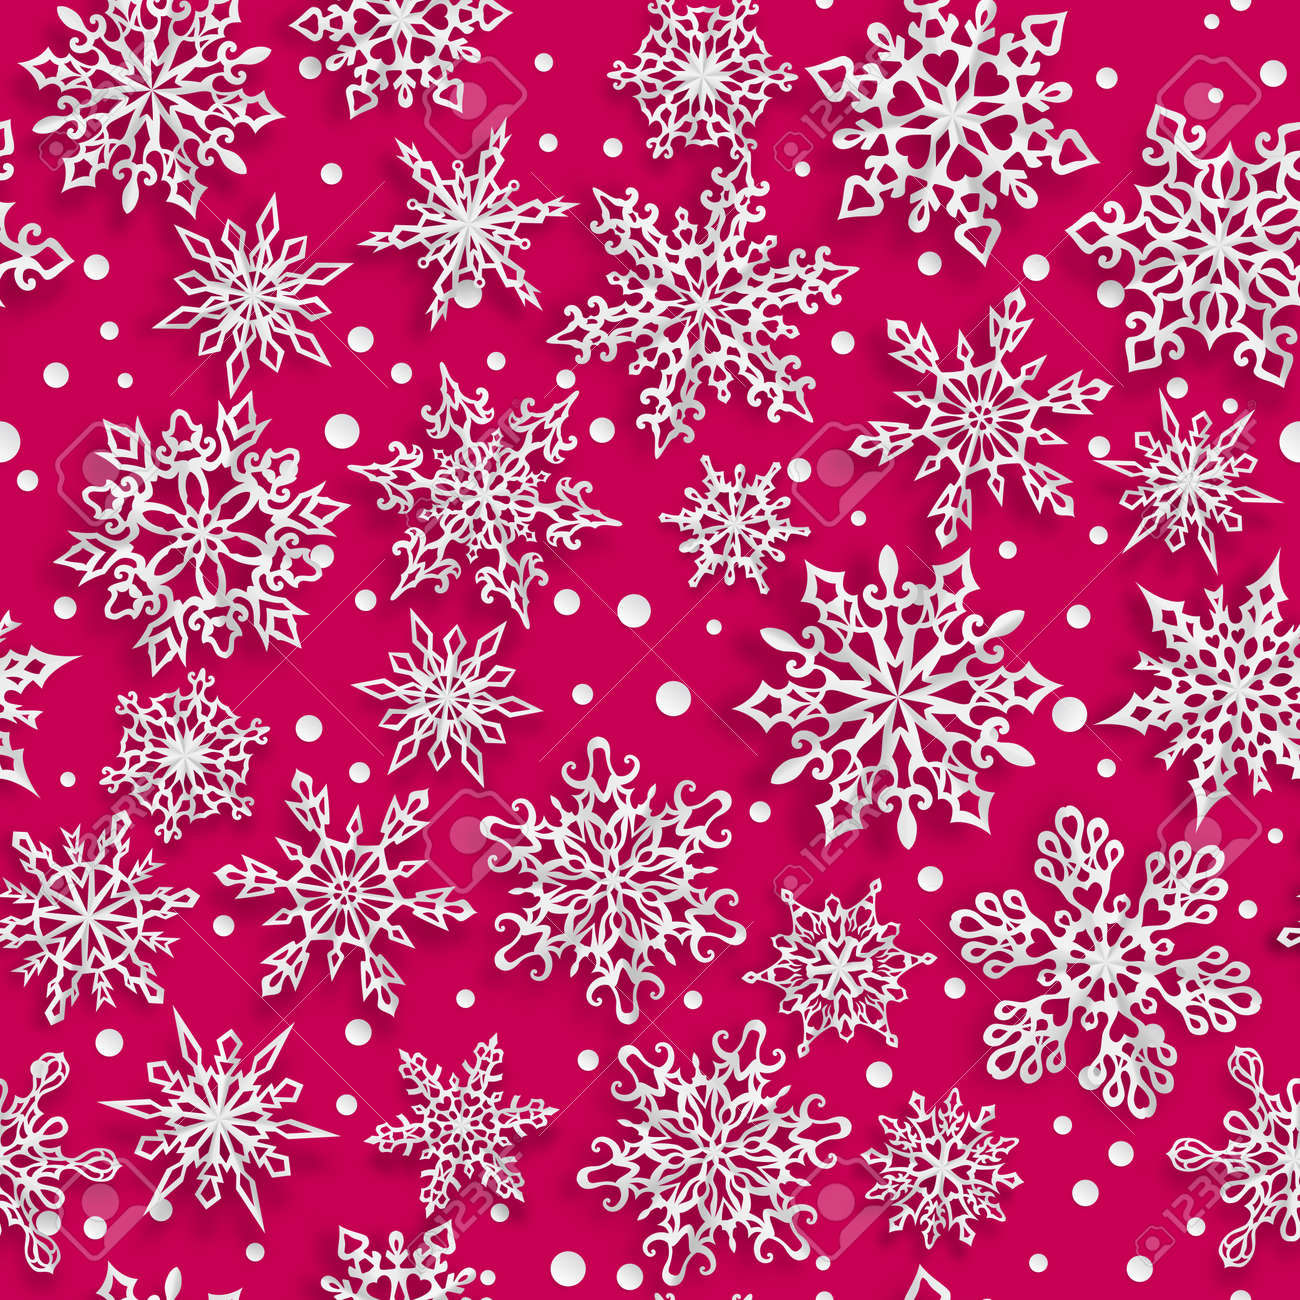 Christmas seamless pattern of paper snowflakes with soft shadows on red background - 152305323